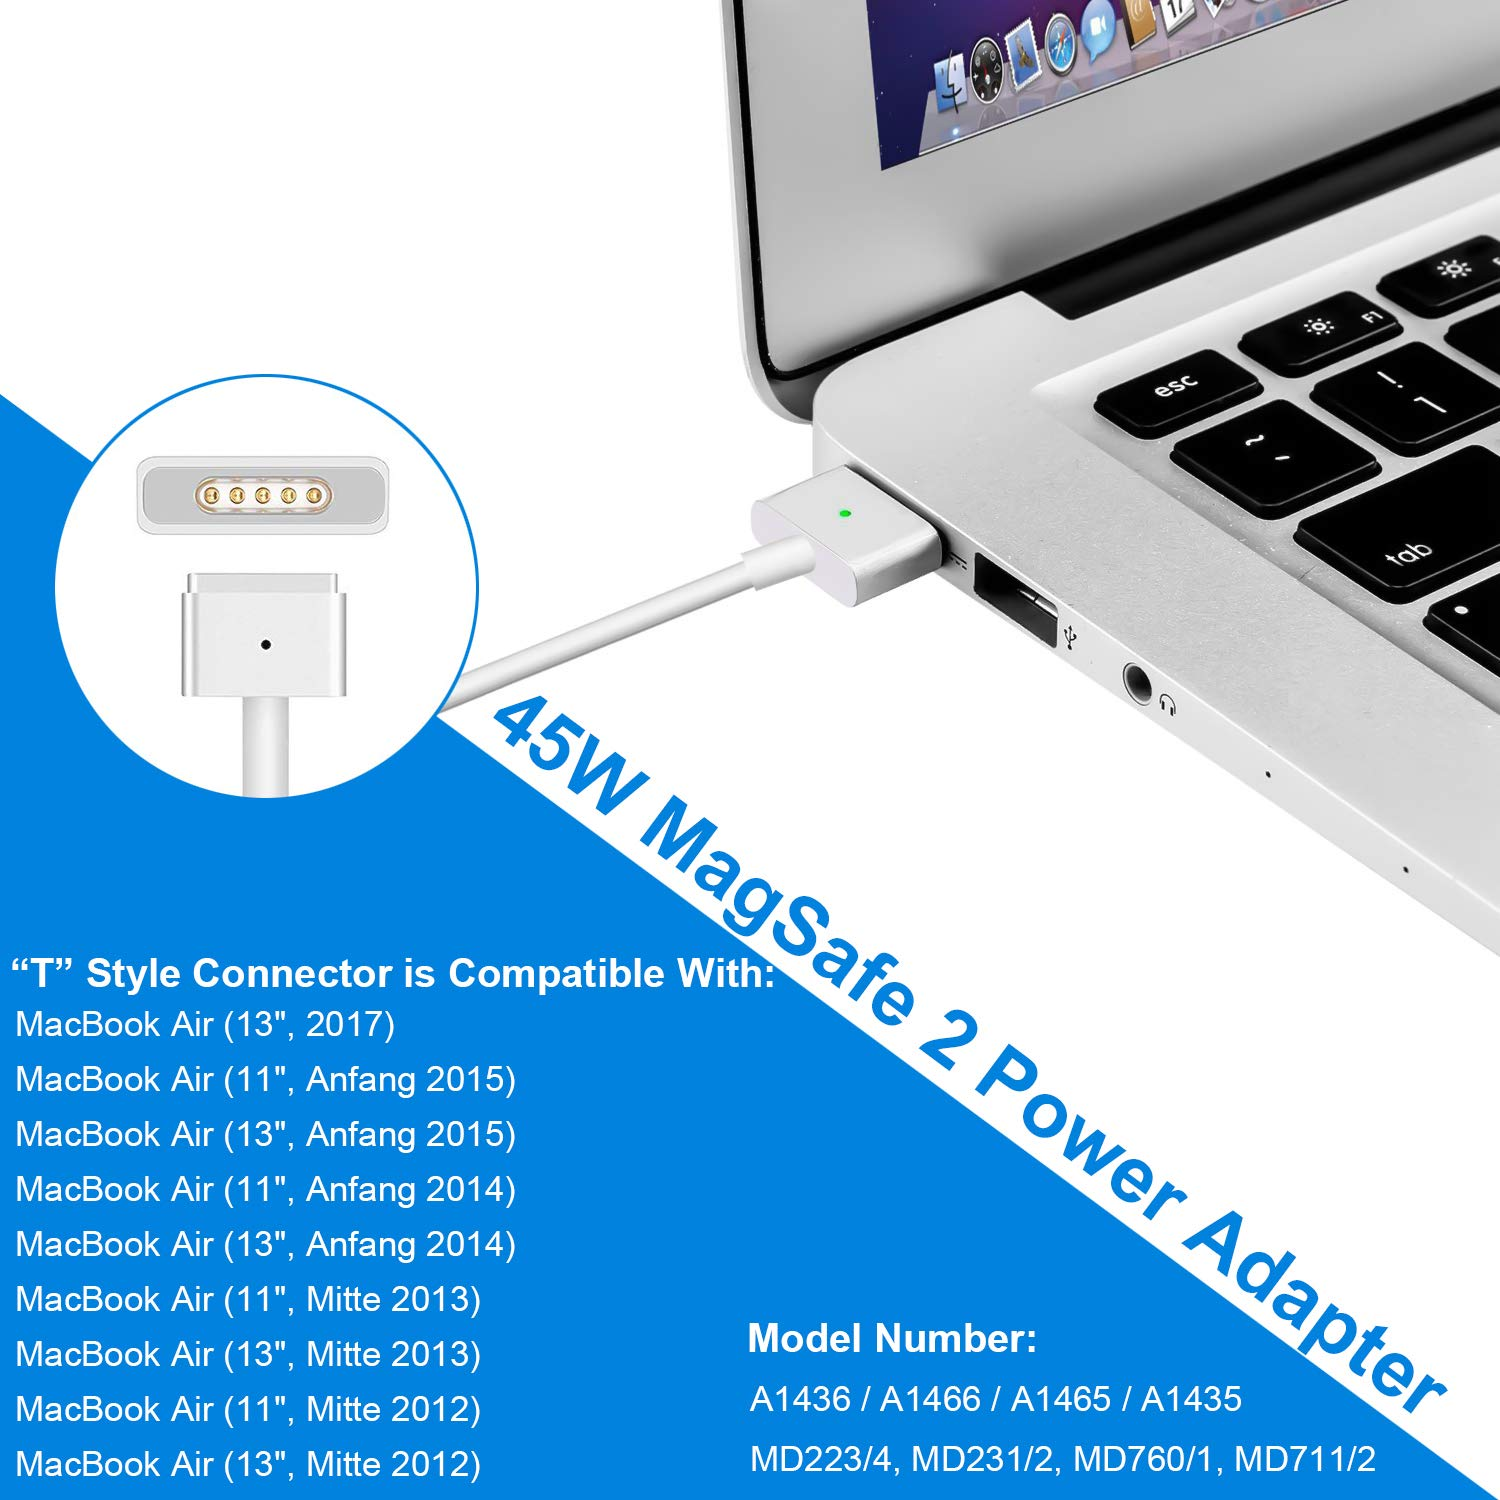 MacBook Air Cargador Fuente, 45 W MagSafe 2 T de punta ponkor de 2 port USB AC Fuente de alimentación para Apple Mac 11